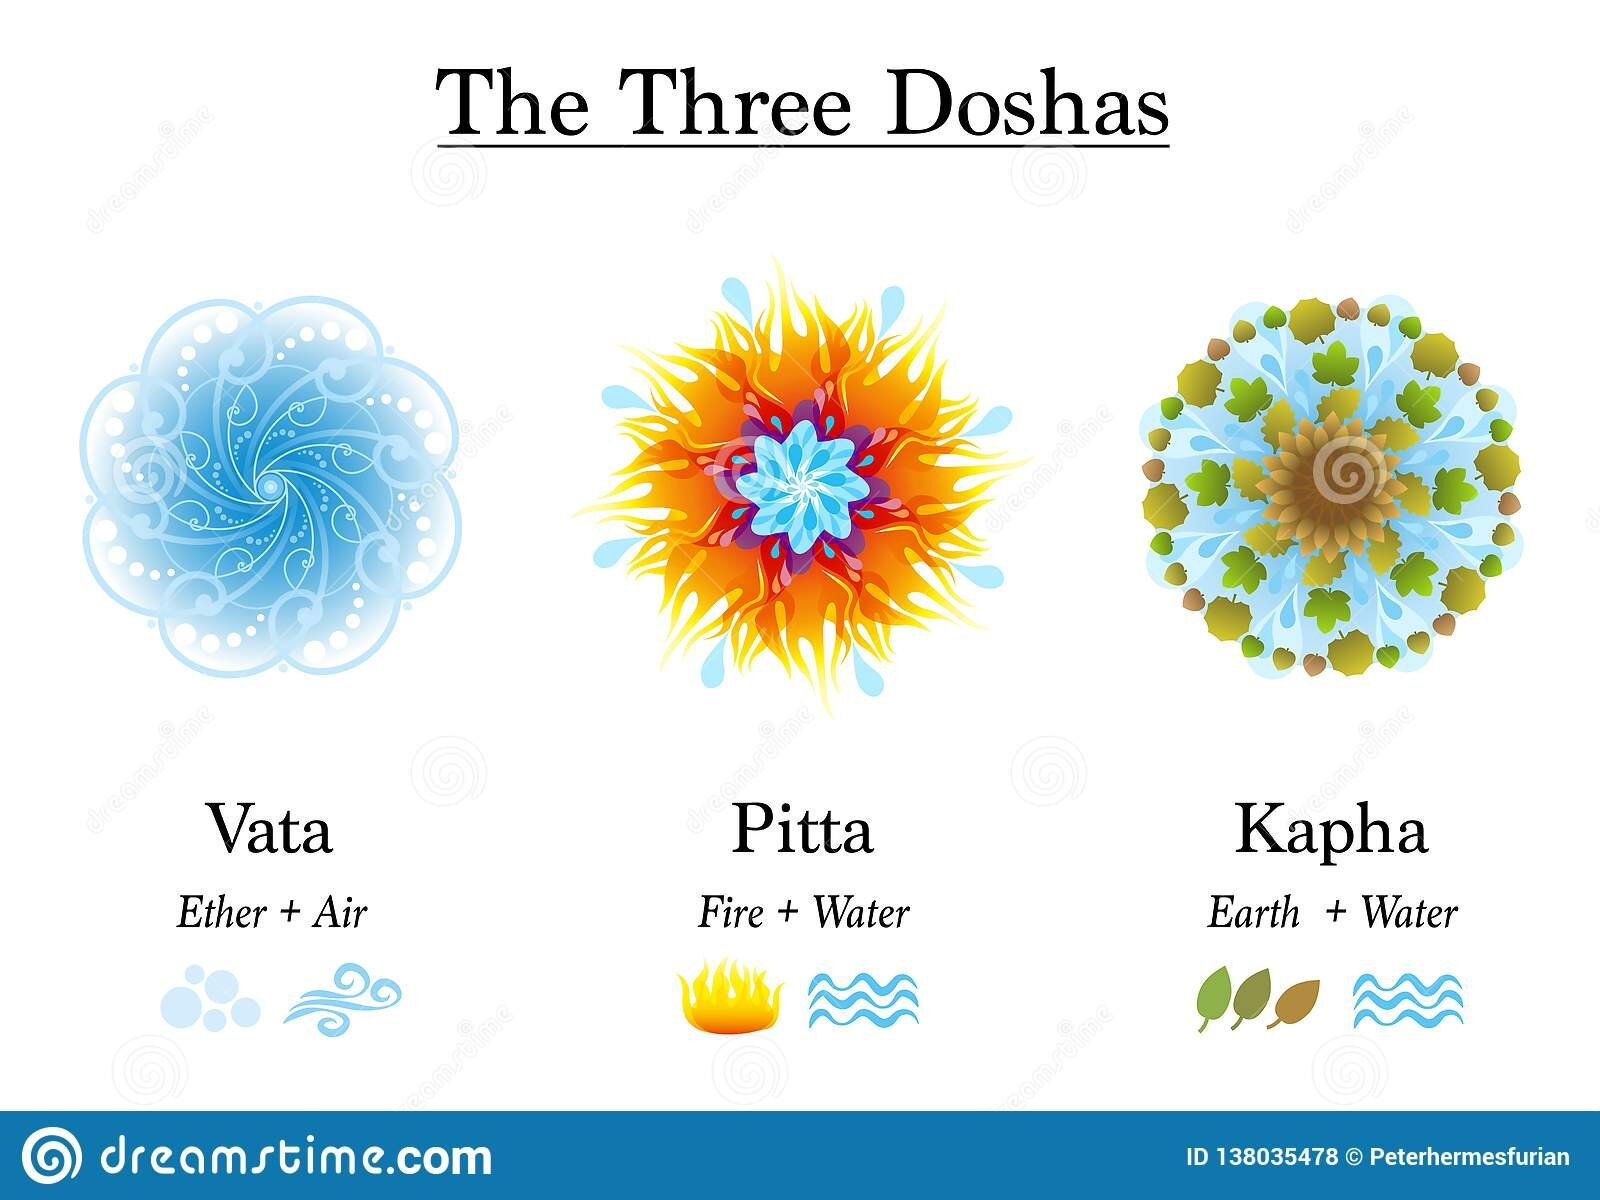 ayurveda-symbols-vata-pitta-kapha-three-doshas-vata-pitta-kapha-ayurvedic-symbols-body-constitution-types-designed-138035478.jpg